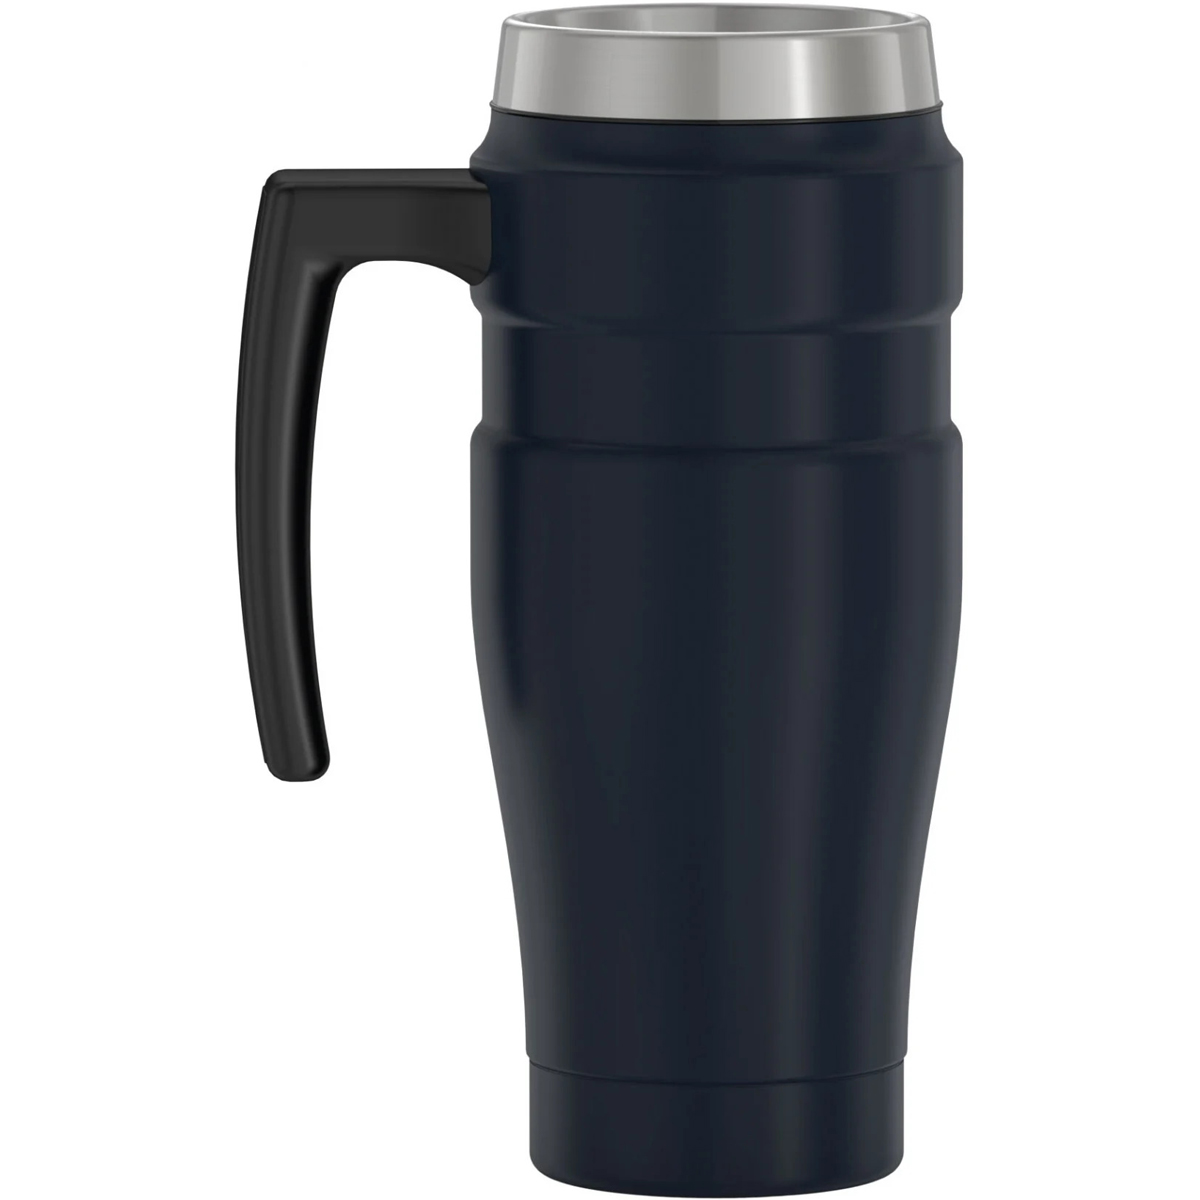 thumbnail 21 - Thermos 16 oz. Stainless King Insulated Stainless Steel Travel Mug with Handle